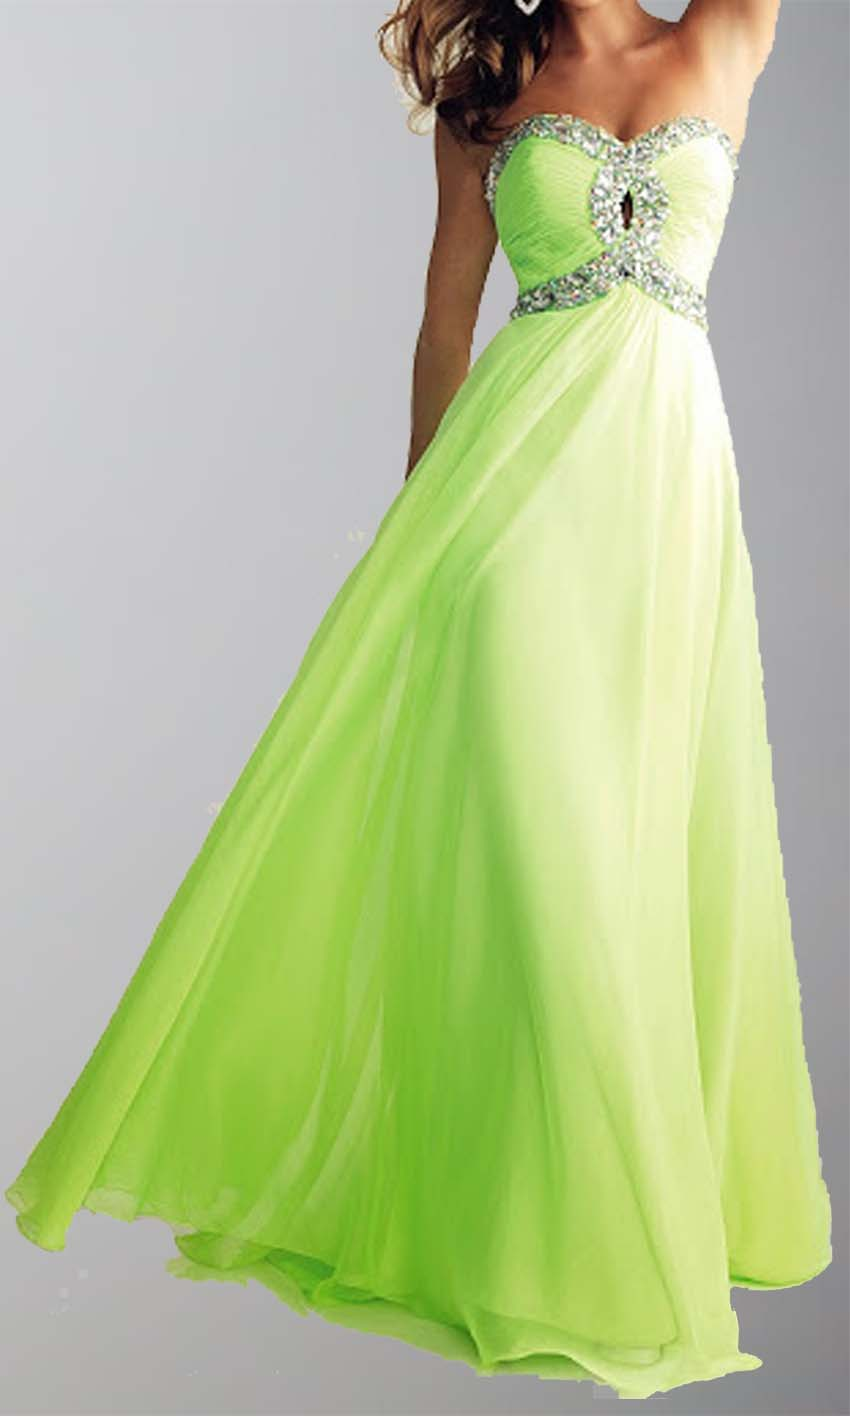 Keyhole Bust Mint Full Length Sequin Prom Dresses KSP307 [KSP307] - £90.00 : Cheap Prom Dresses Uk, Bridesmaid Dresses, 2014 Prom & Evening Dresses, Look for cheap elegant prom dresses 2014, cocktail gowns, or dresses for special occasions? kissprom.co.uk offers various bridesmaid dresses, evening dress, free shipping to UK etc.